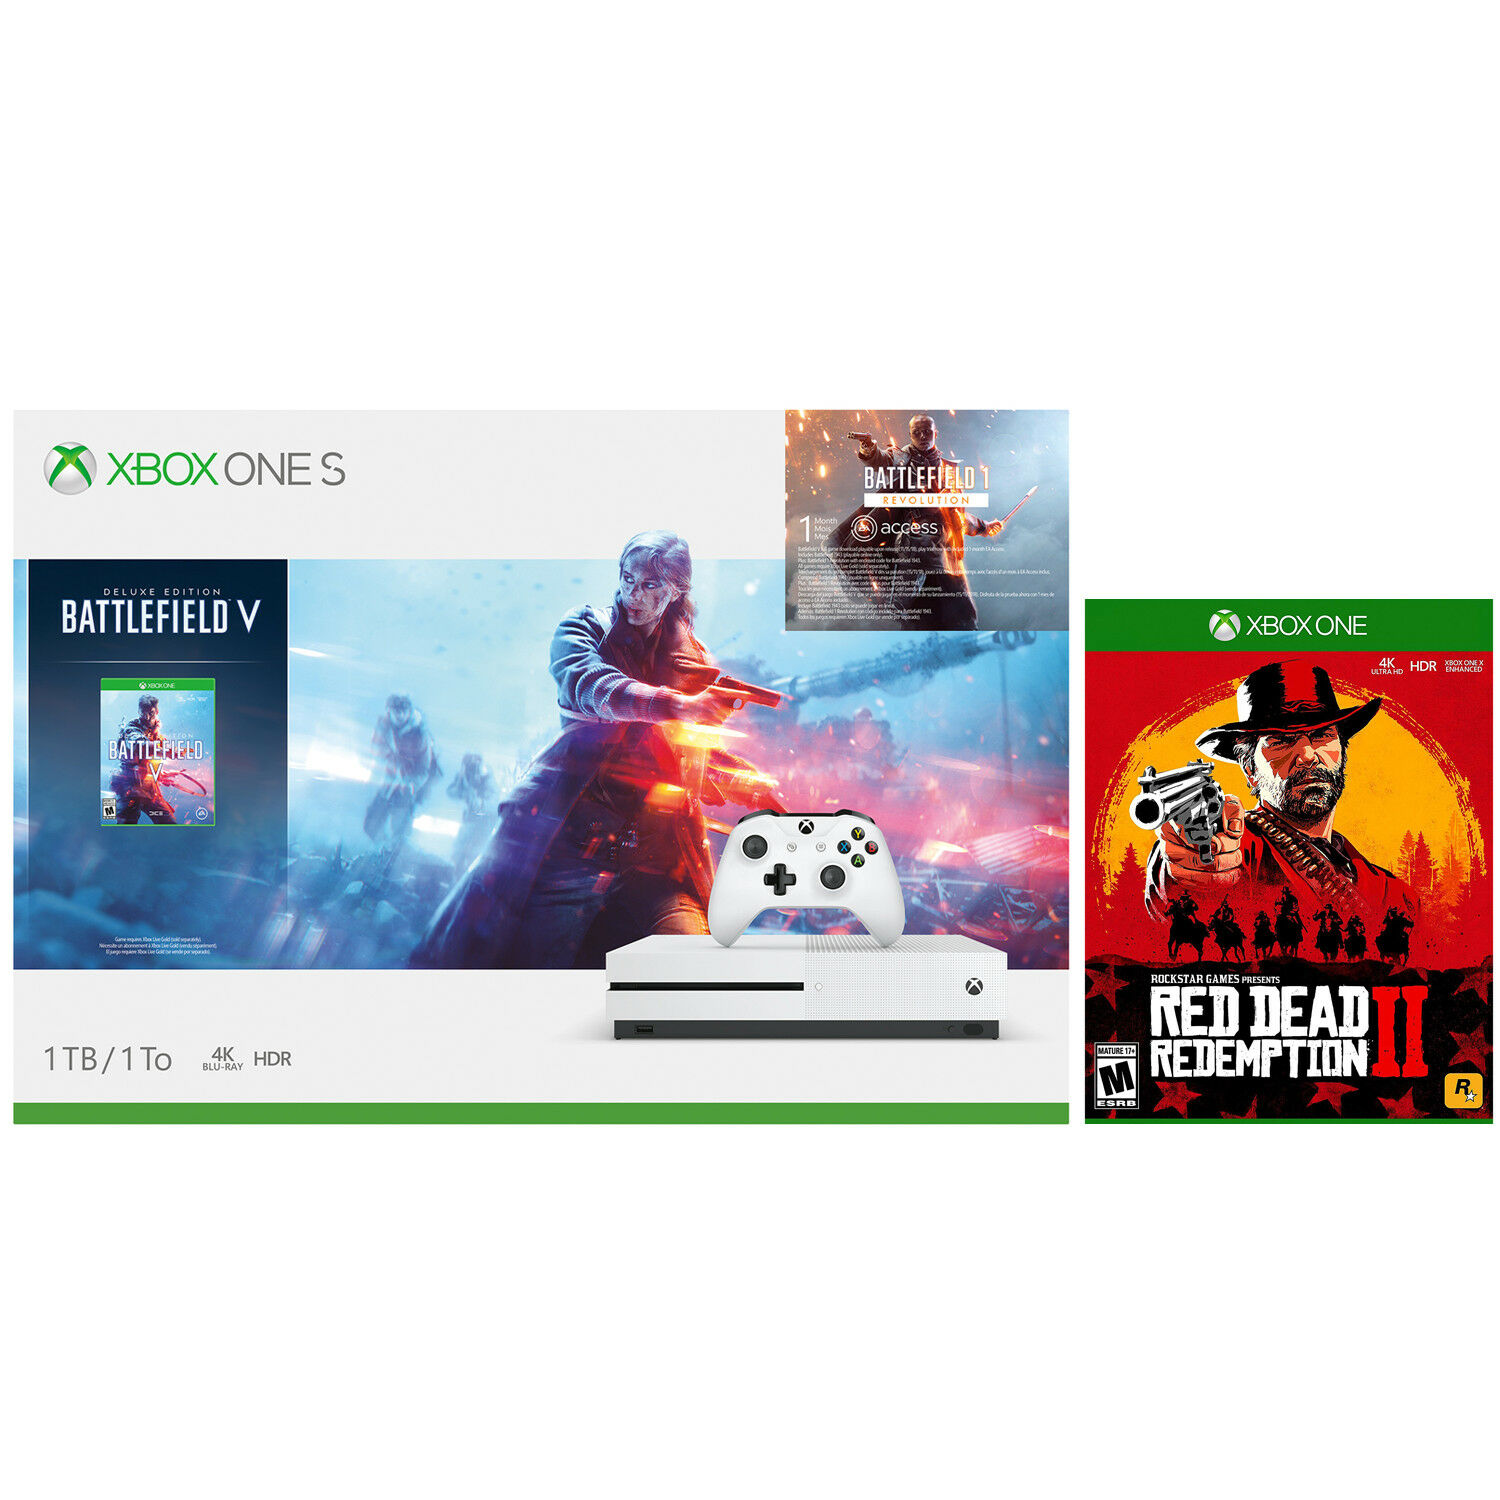 HOT!* ebay – Xbox One S 1TB Battlefield V Console + Red Dead